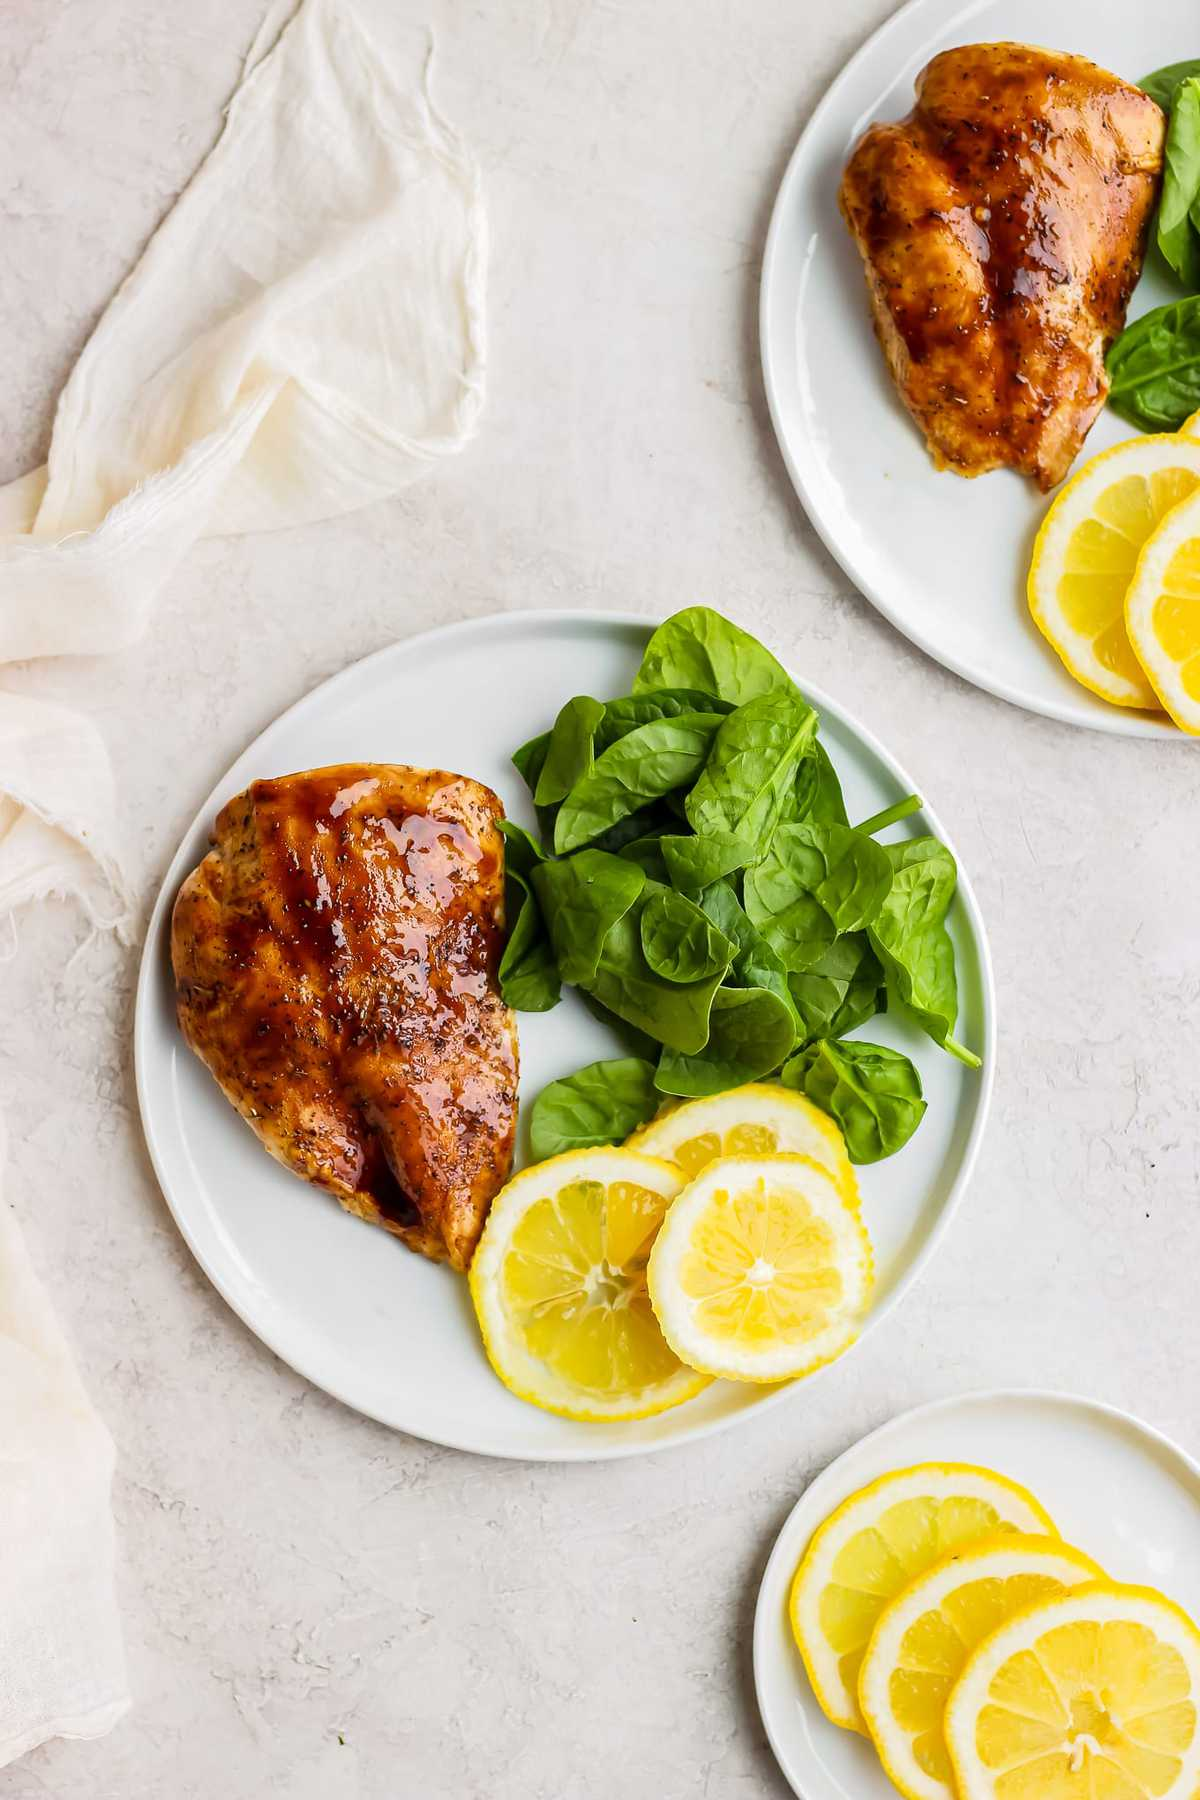 plate of chicken, spinach, and lemon slices